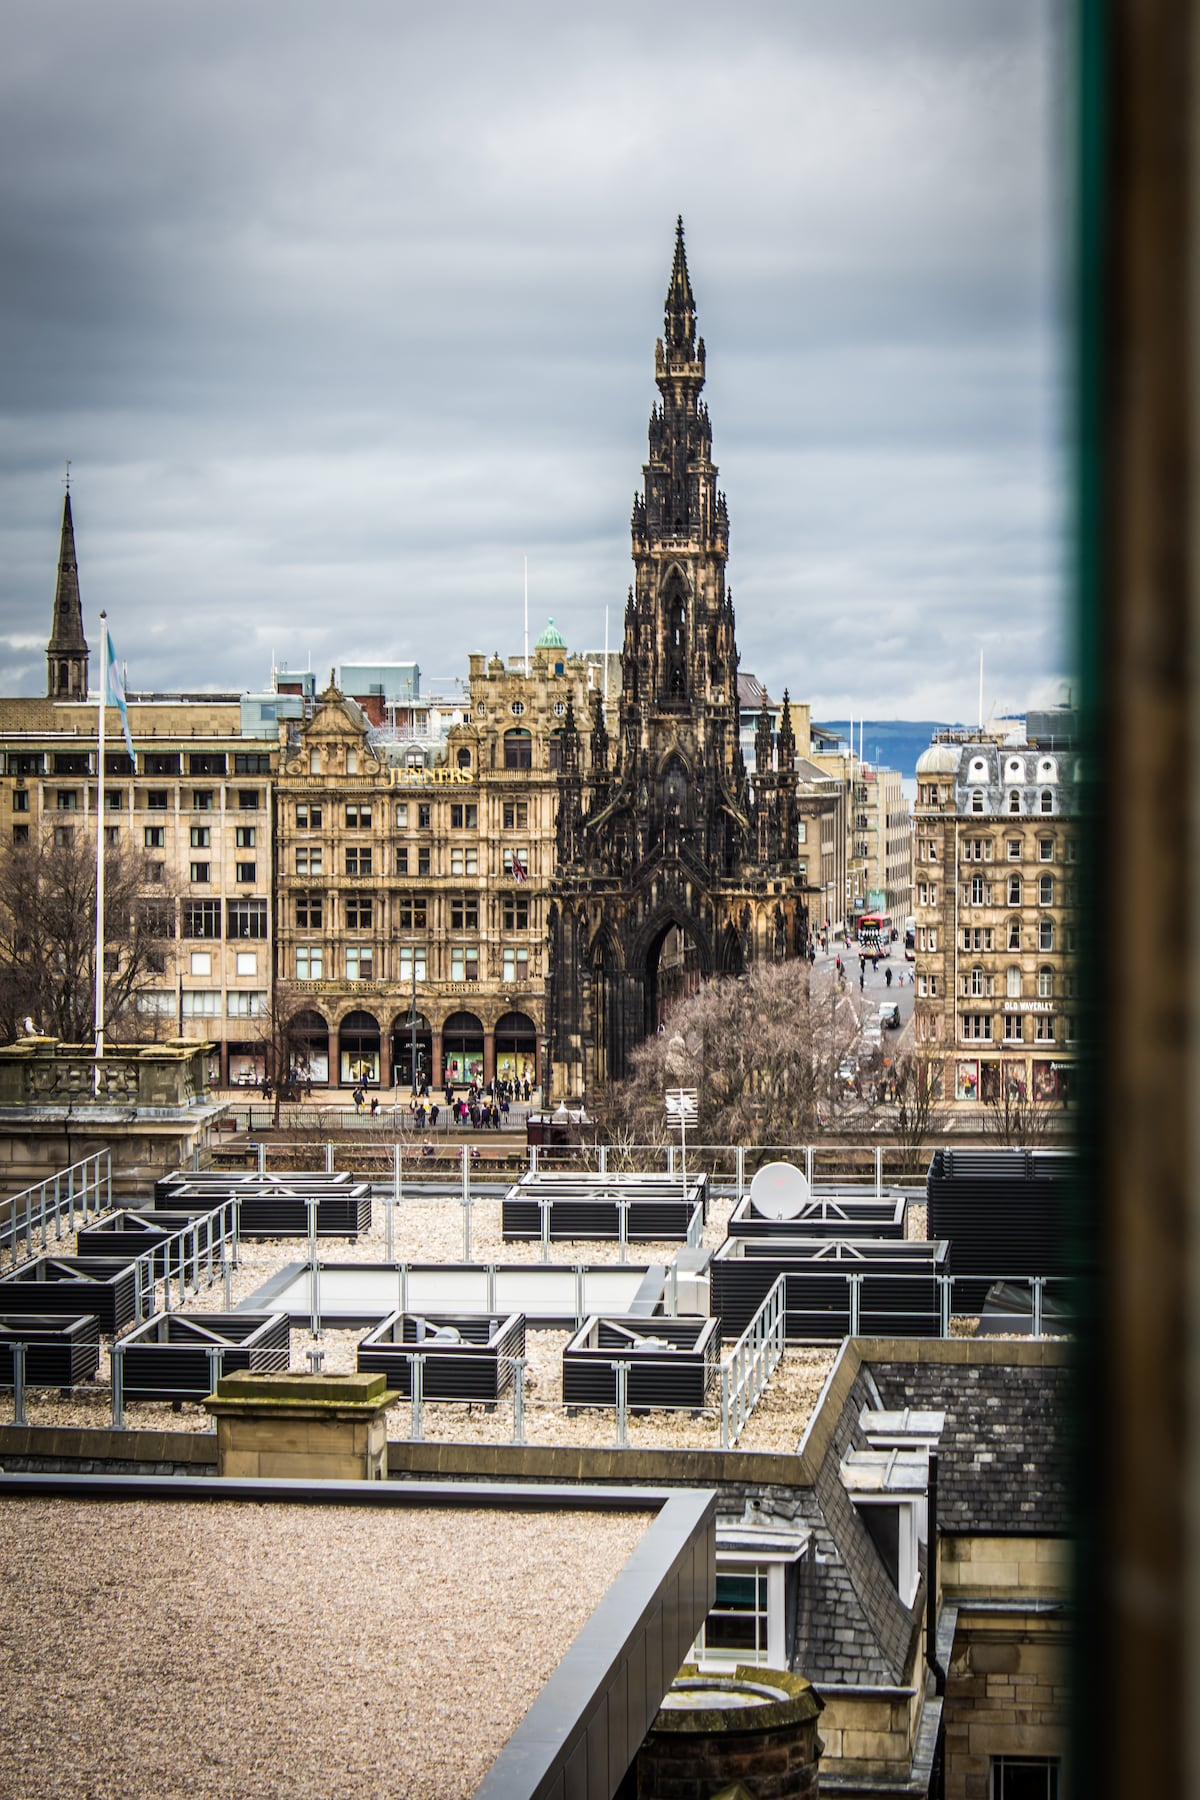 View of the Scotts Monument from the kitchen window (you do have to stretch you neck for this view!)